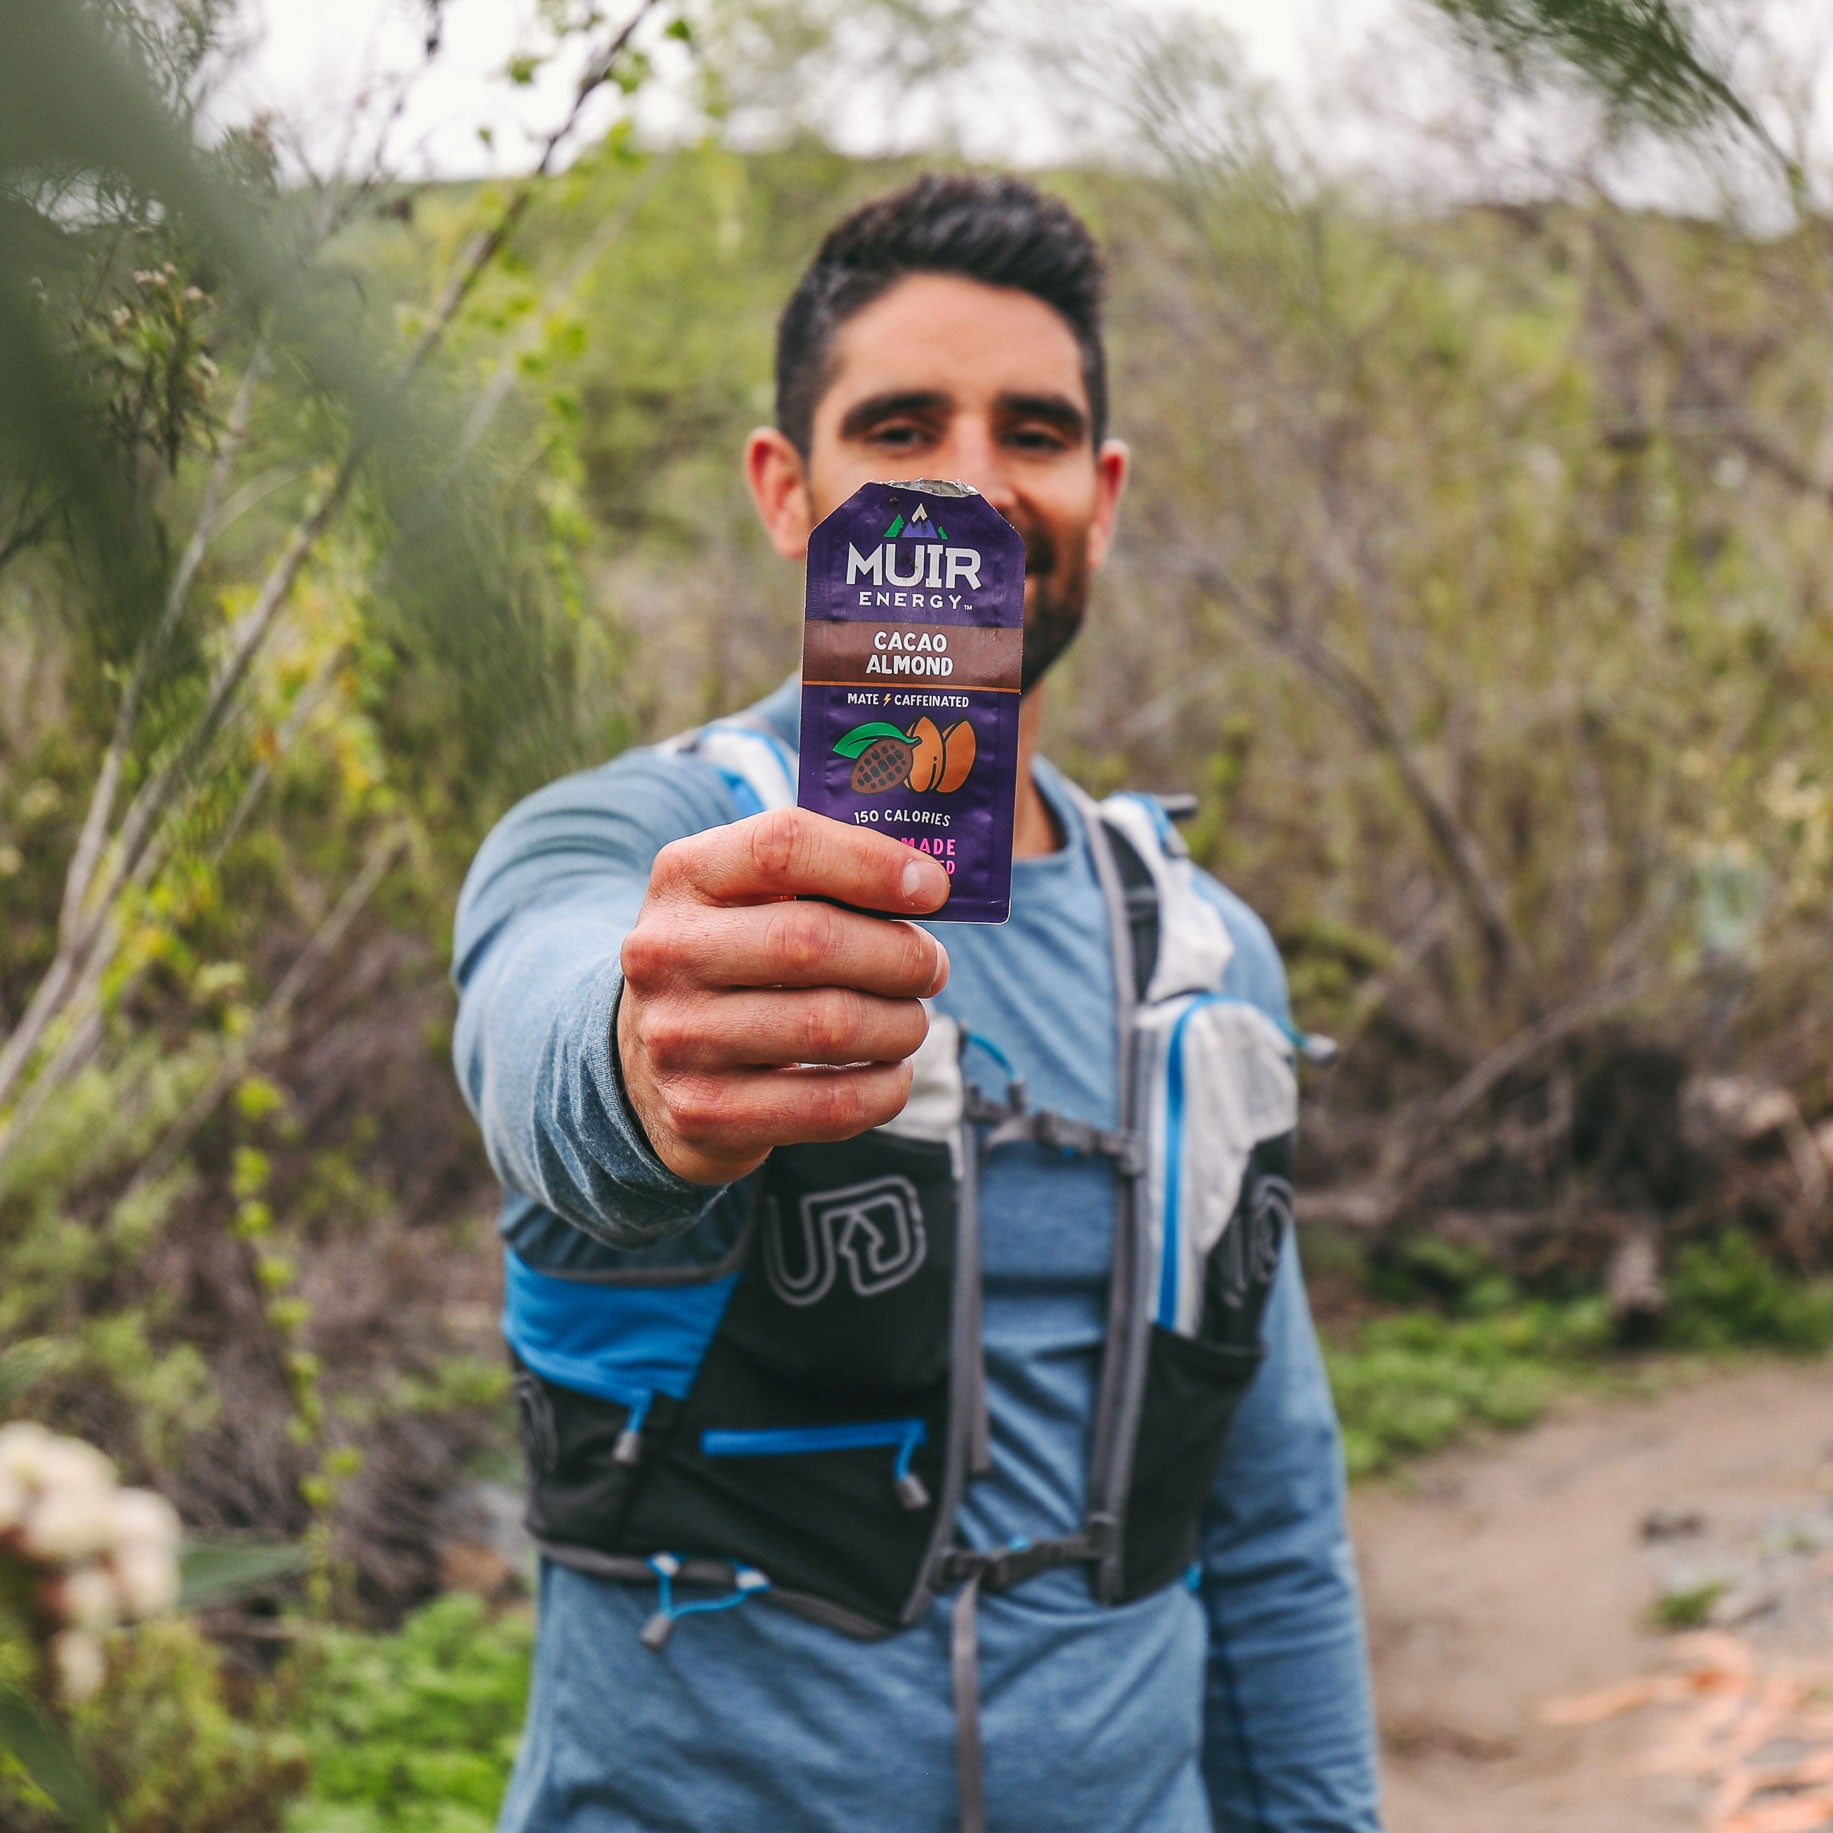 Muir Energy endurance athlete and trail runner eating Cacao Almond Mate.